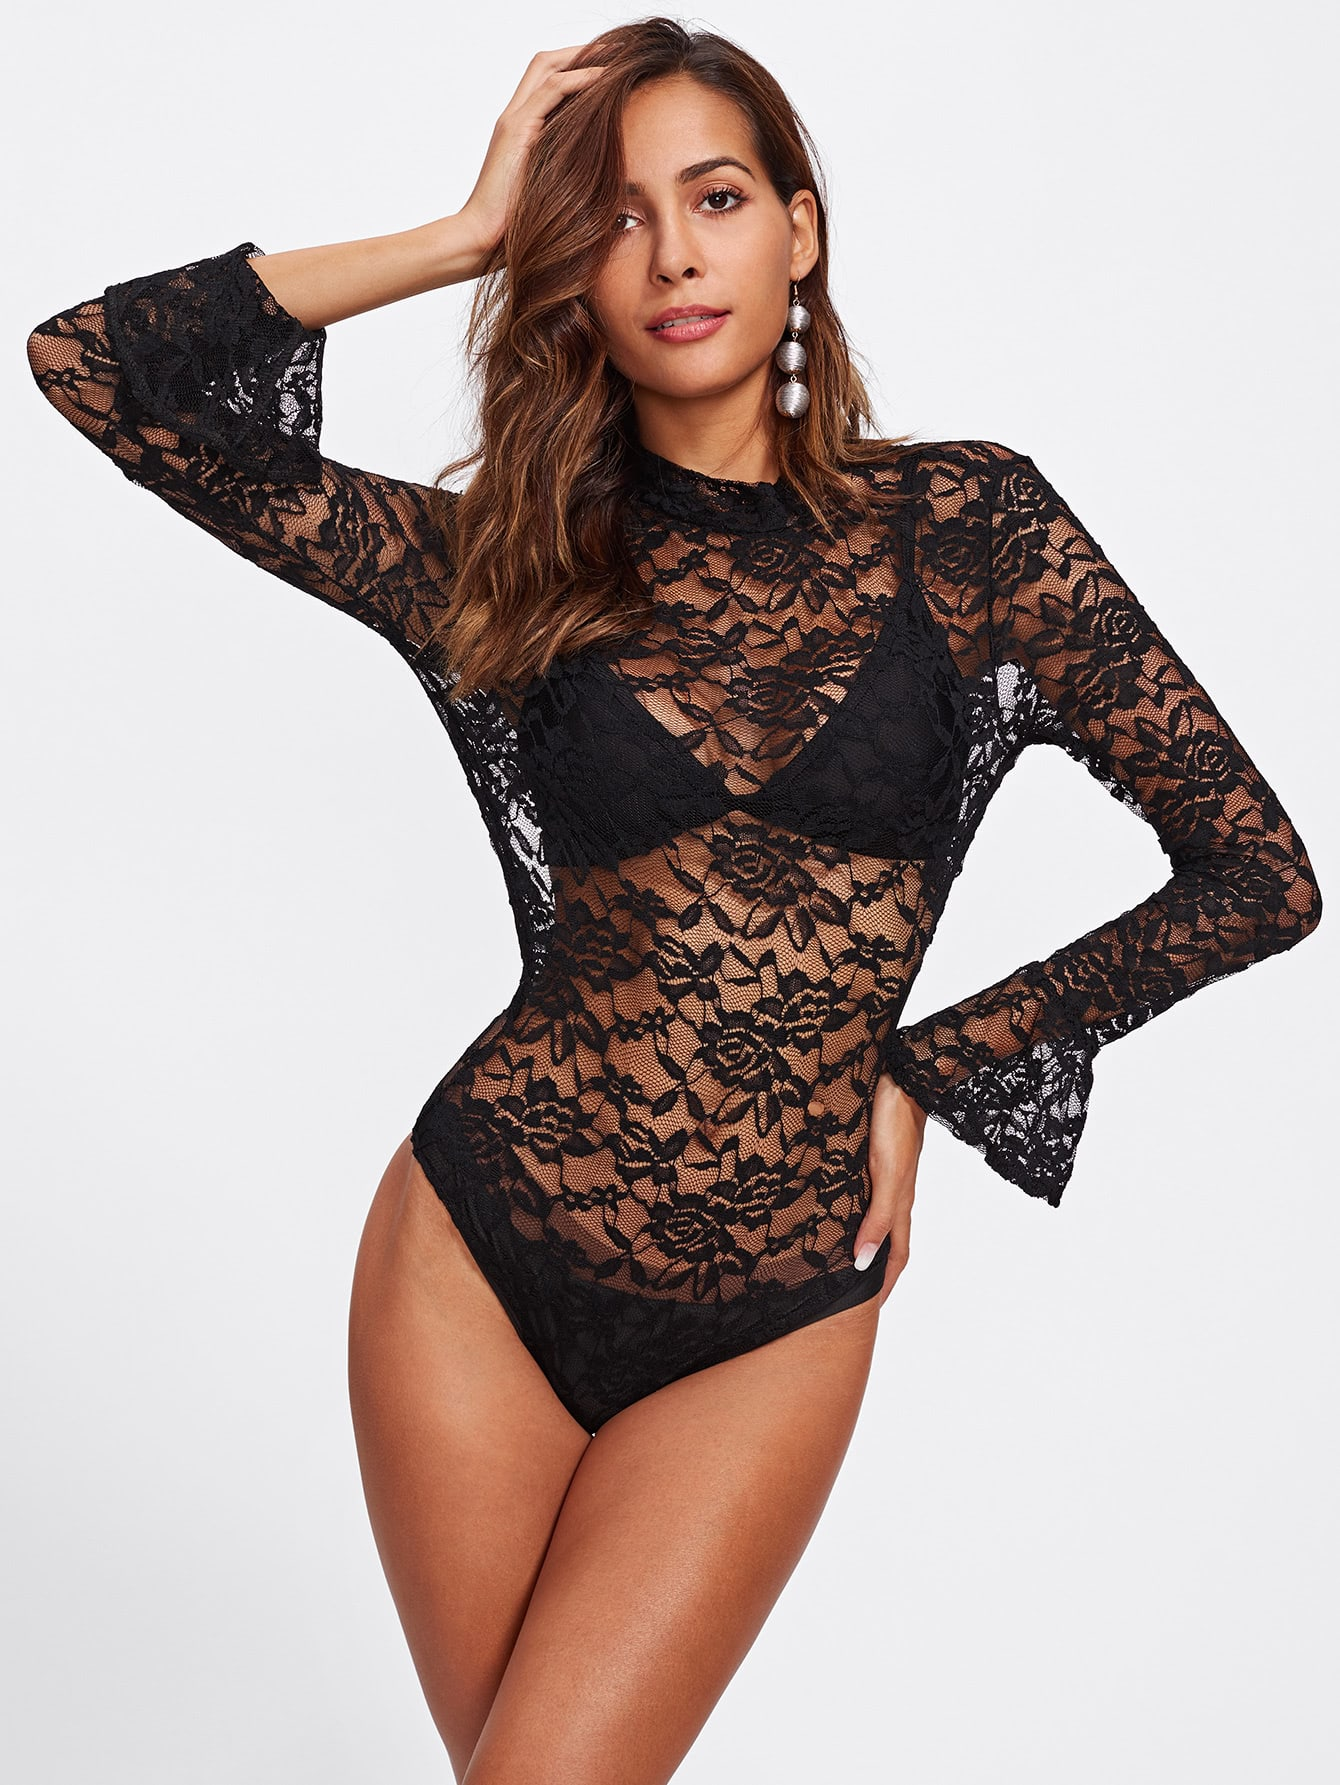 Lace Crochet Bell Sleeve See Through Bodysuit mesh see through cut out crochet tights